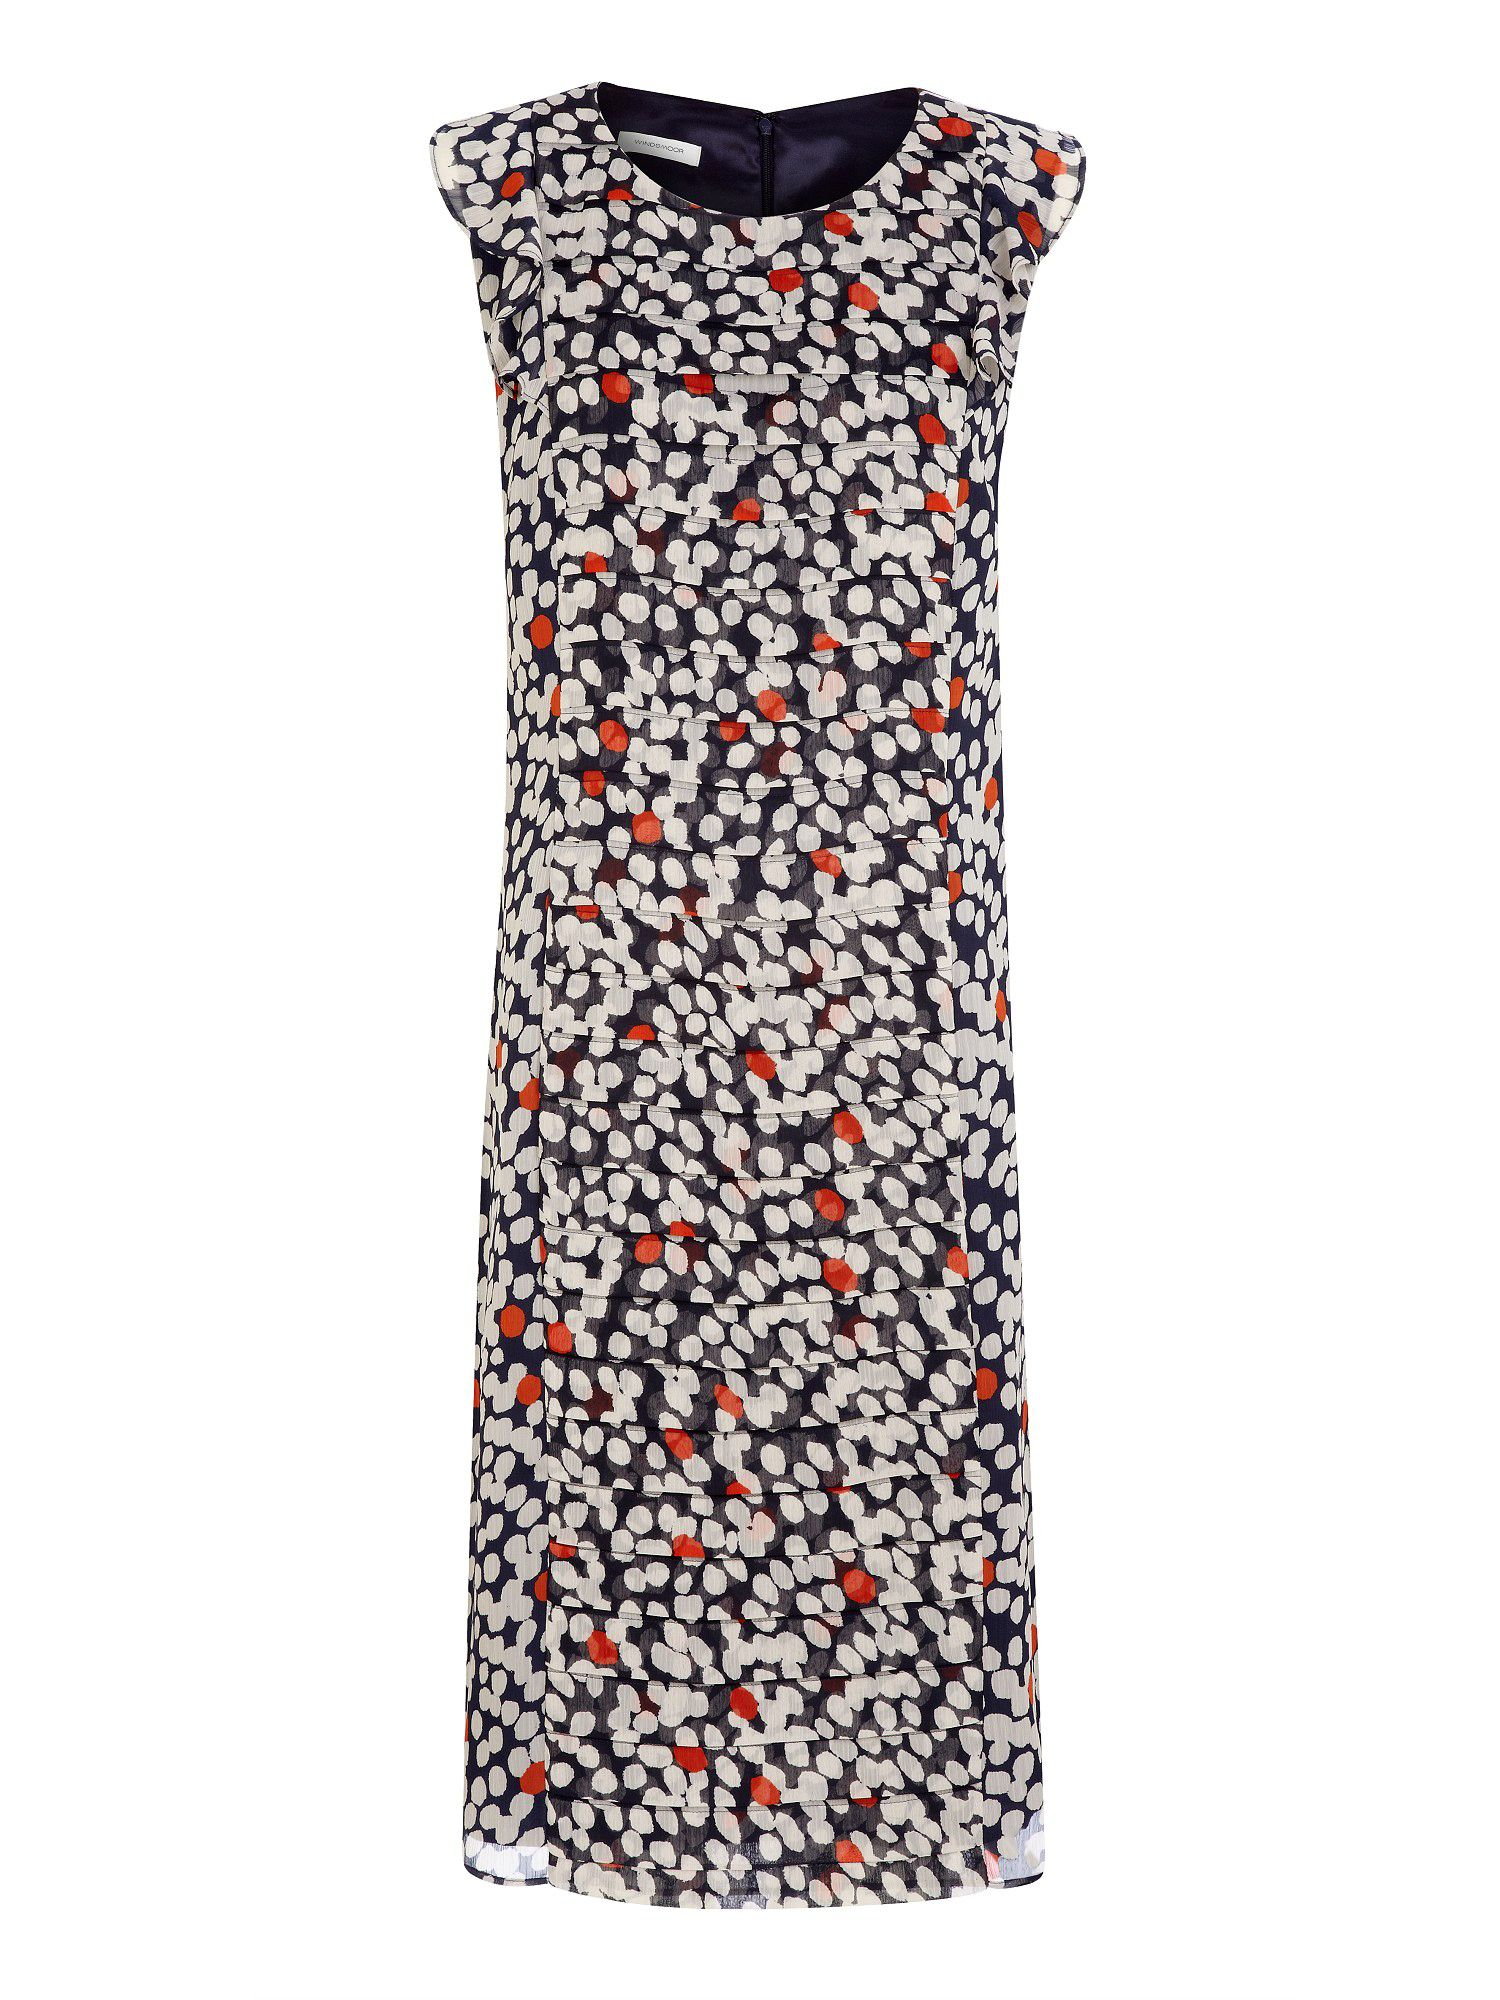 Spot print chiffon dress